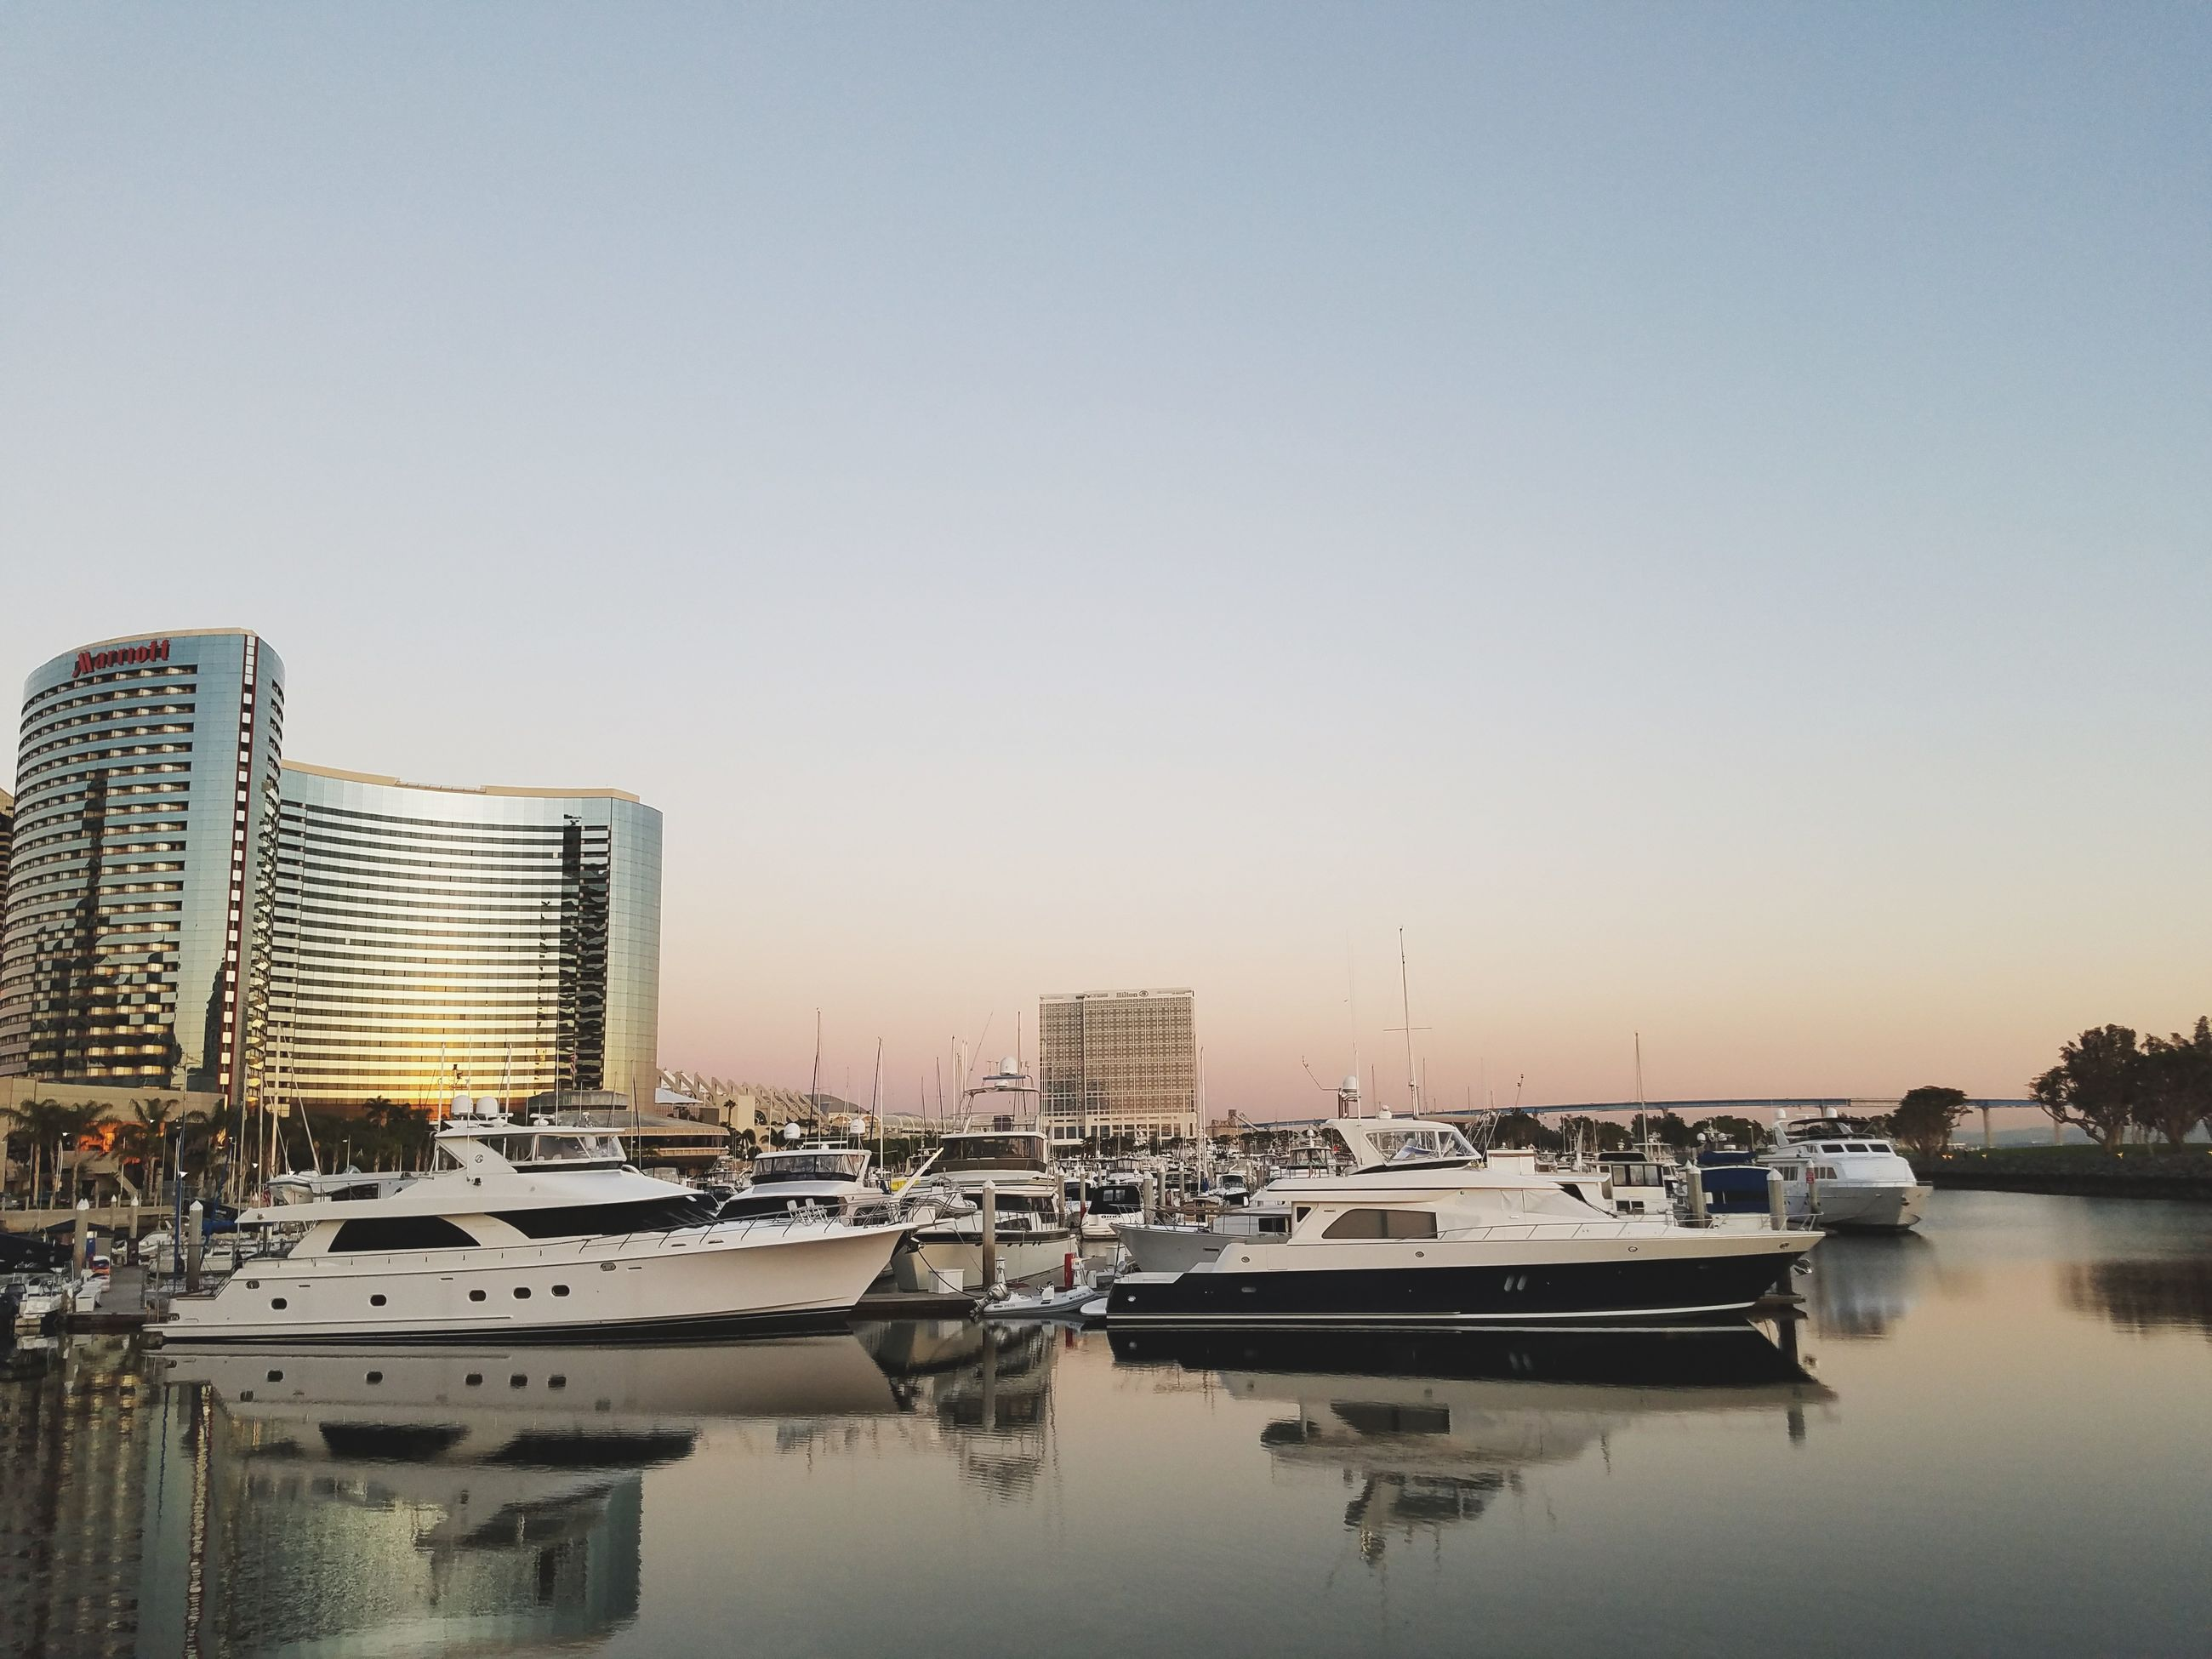 building exterior, clear sky, water, architecture, reflection, built structure, city, outdoors, no people, sky, waterfront, river, nautical vessel, cityscape, day, skyscraper, urban skyline, nature